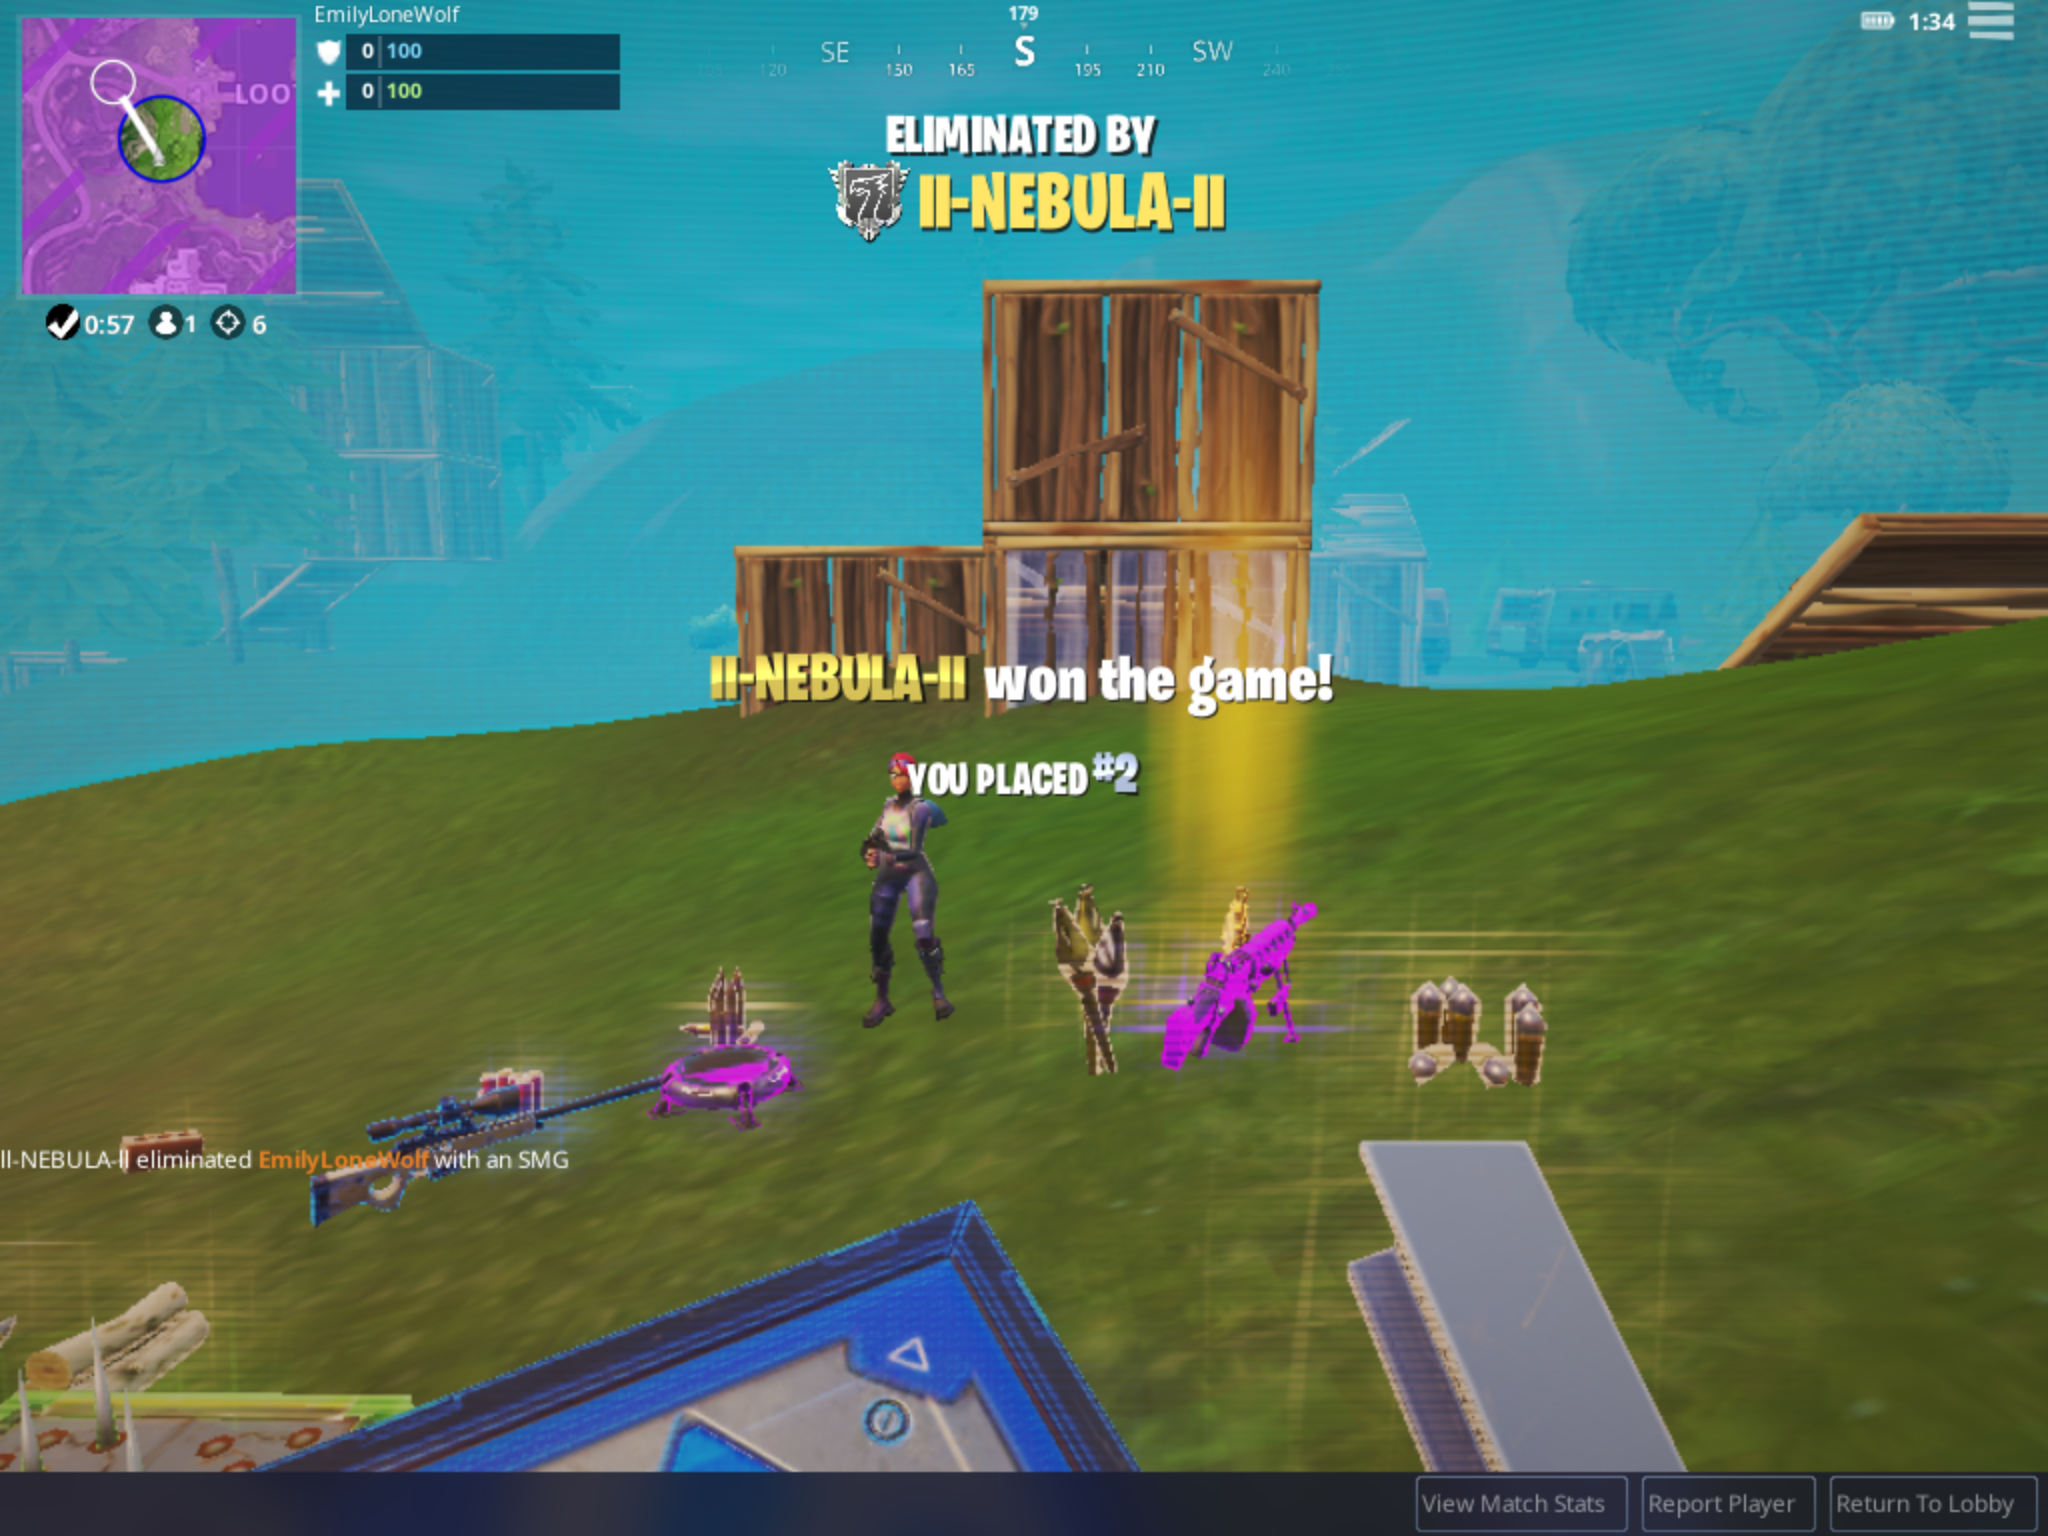 Pin by GhostWolf030 on Fortnite (With images) Fortnite